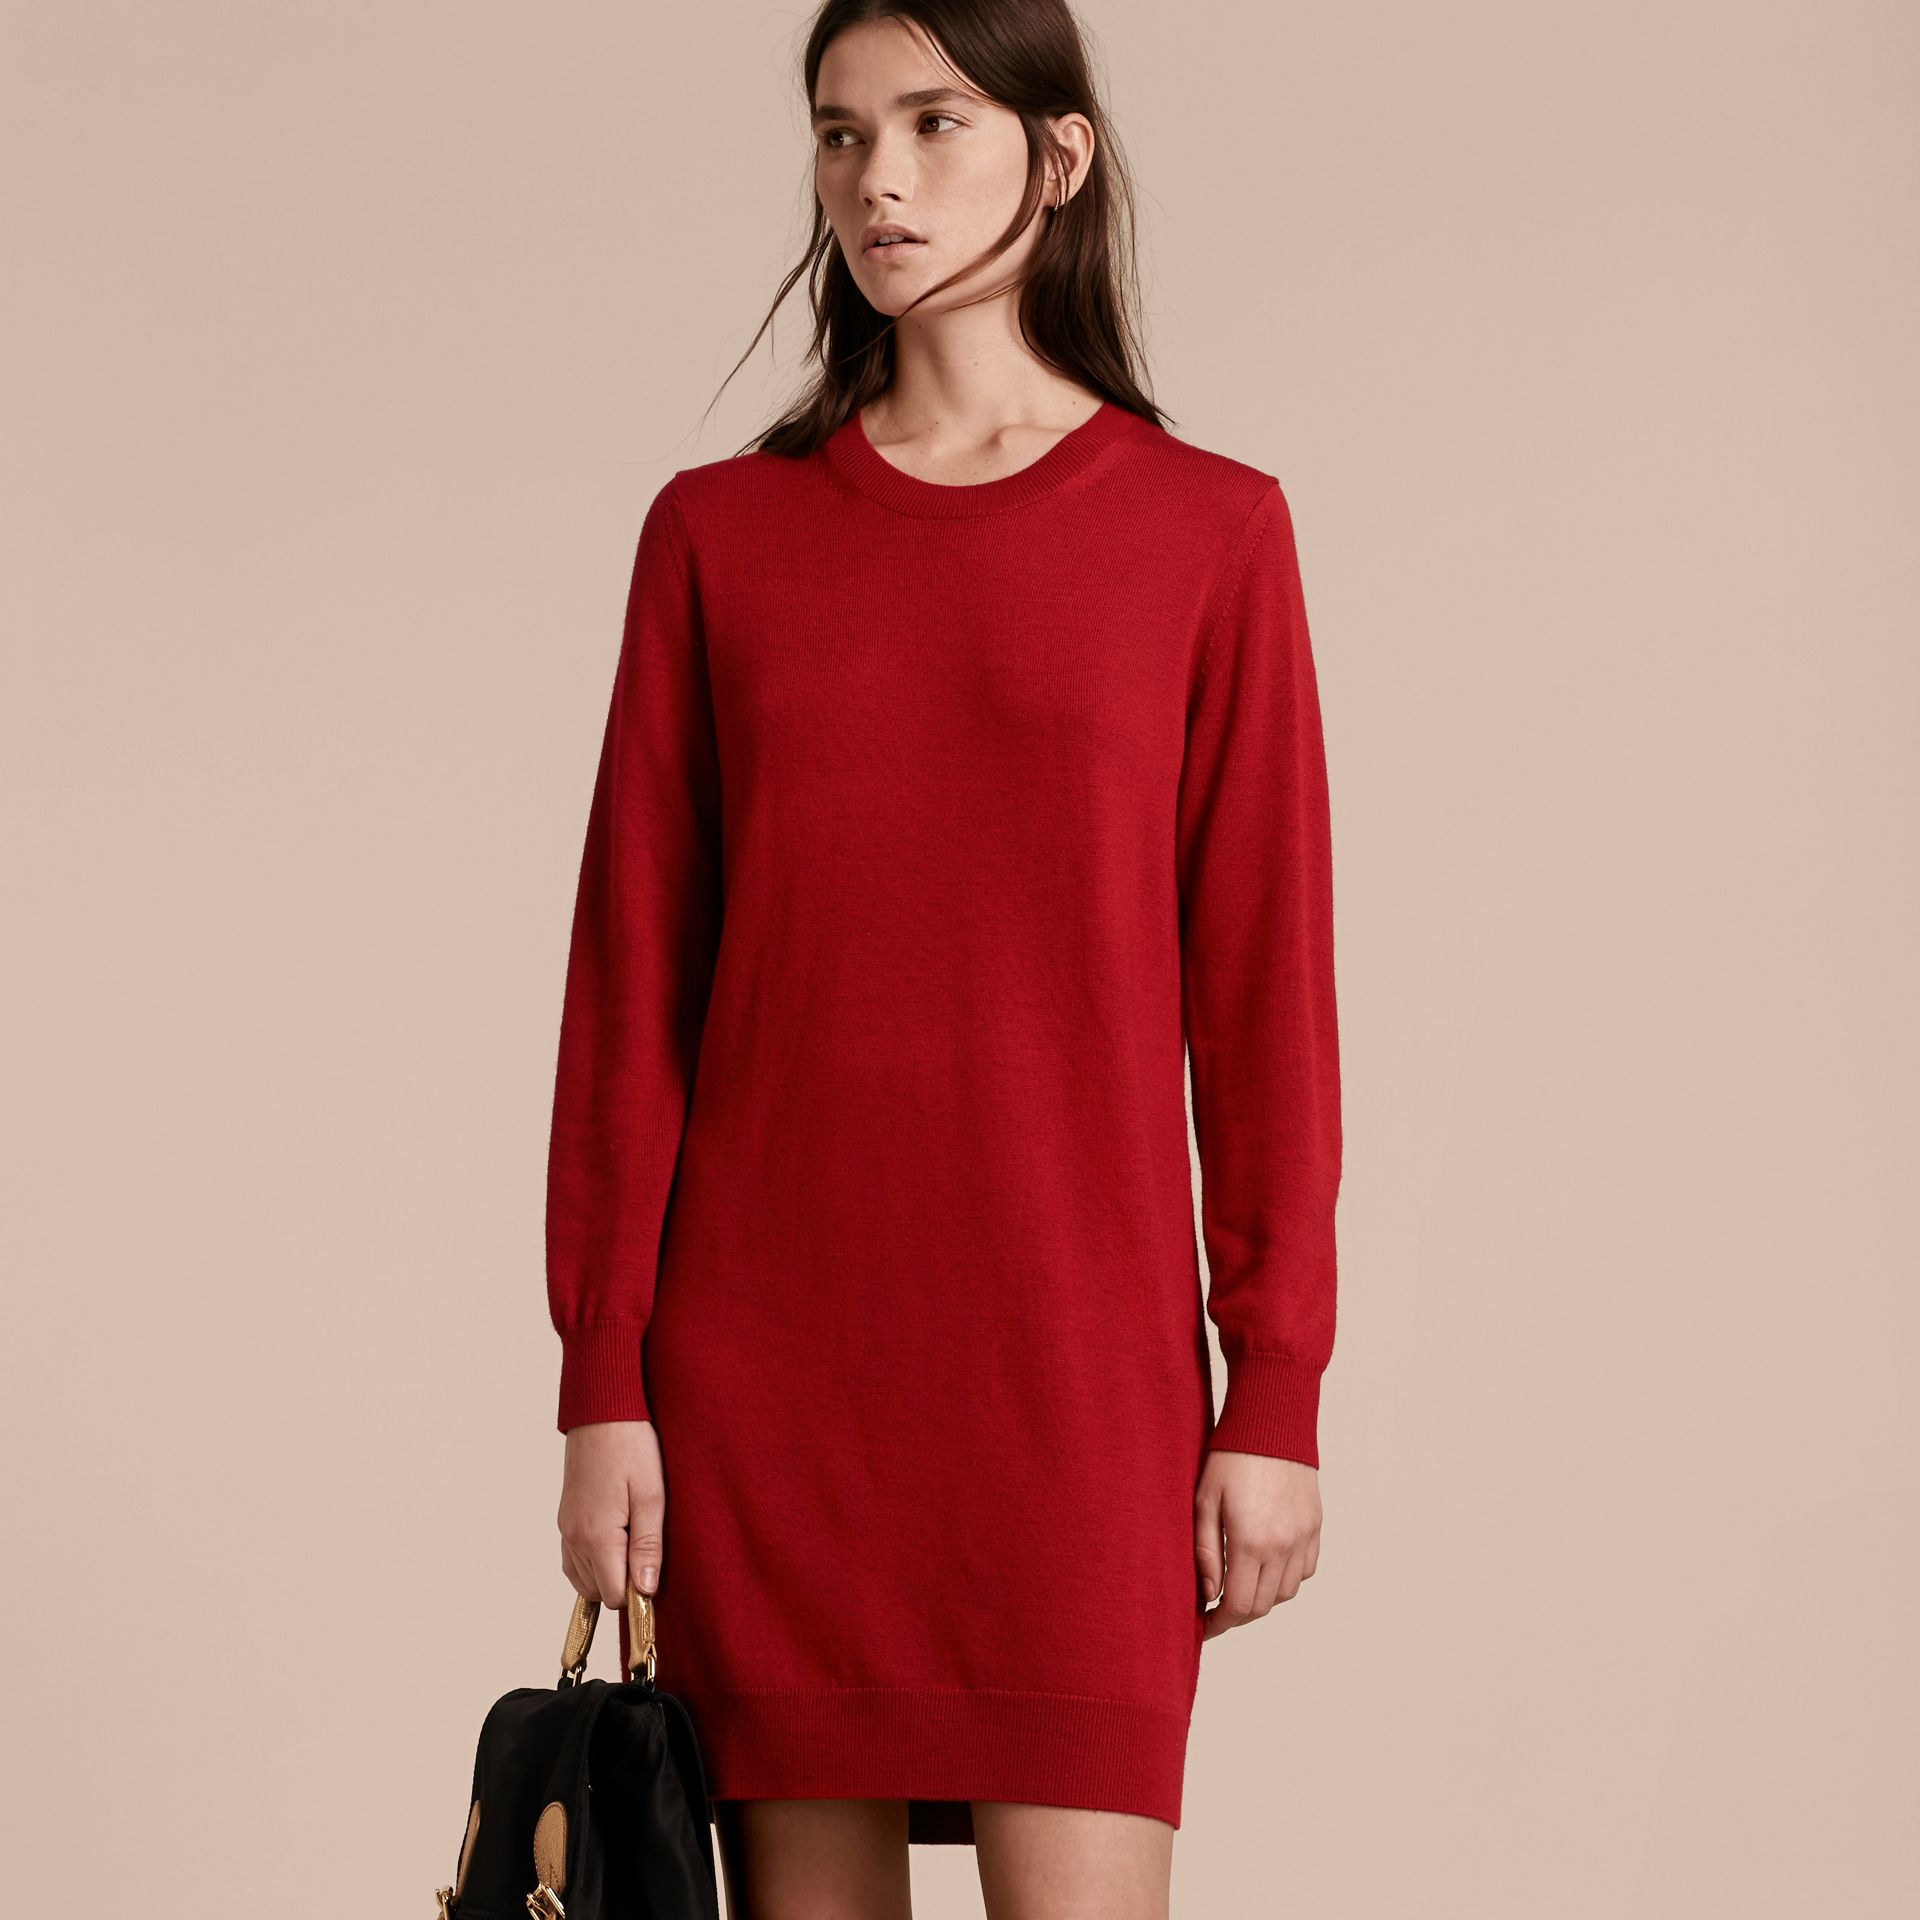 Check Elbow Detail Merino Wool Sweater Dress Parade Red - gallery image 6